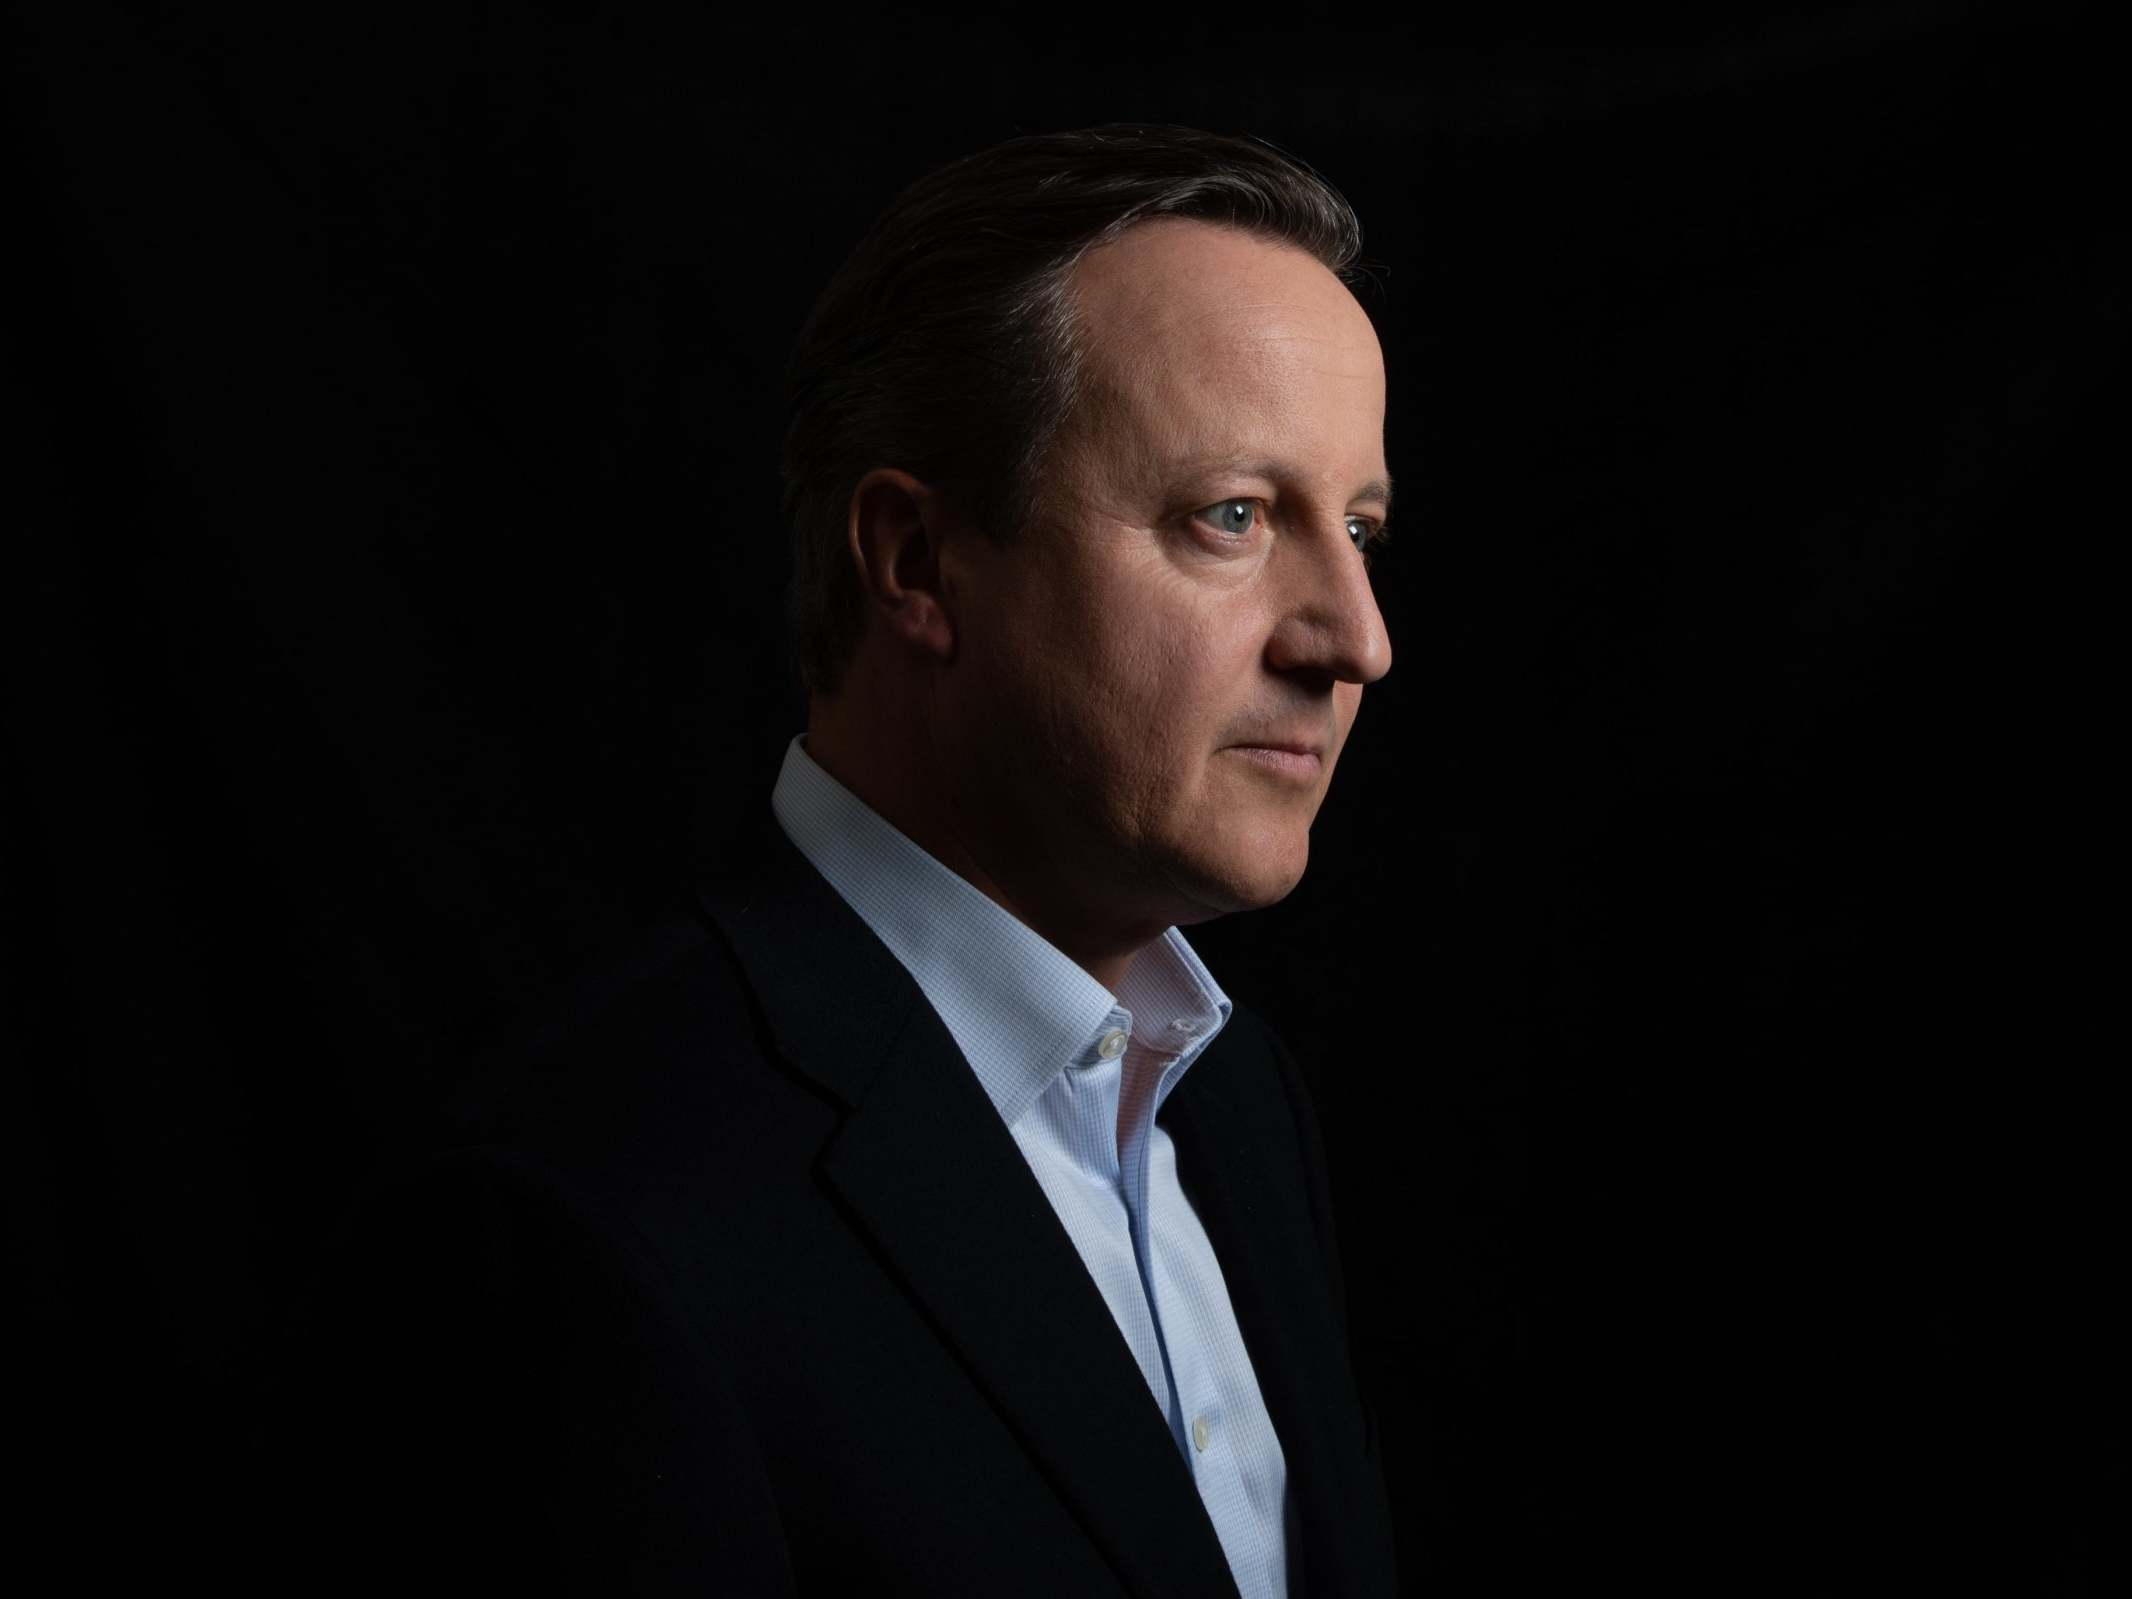 Political memoirs are usually vanity projects – and David Cameron's attempt at recrimination is no different